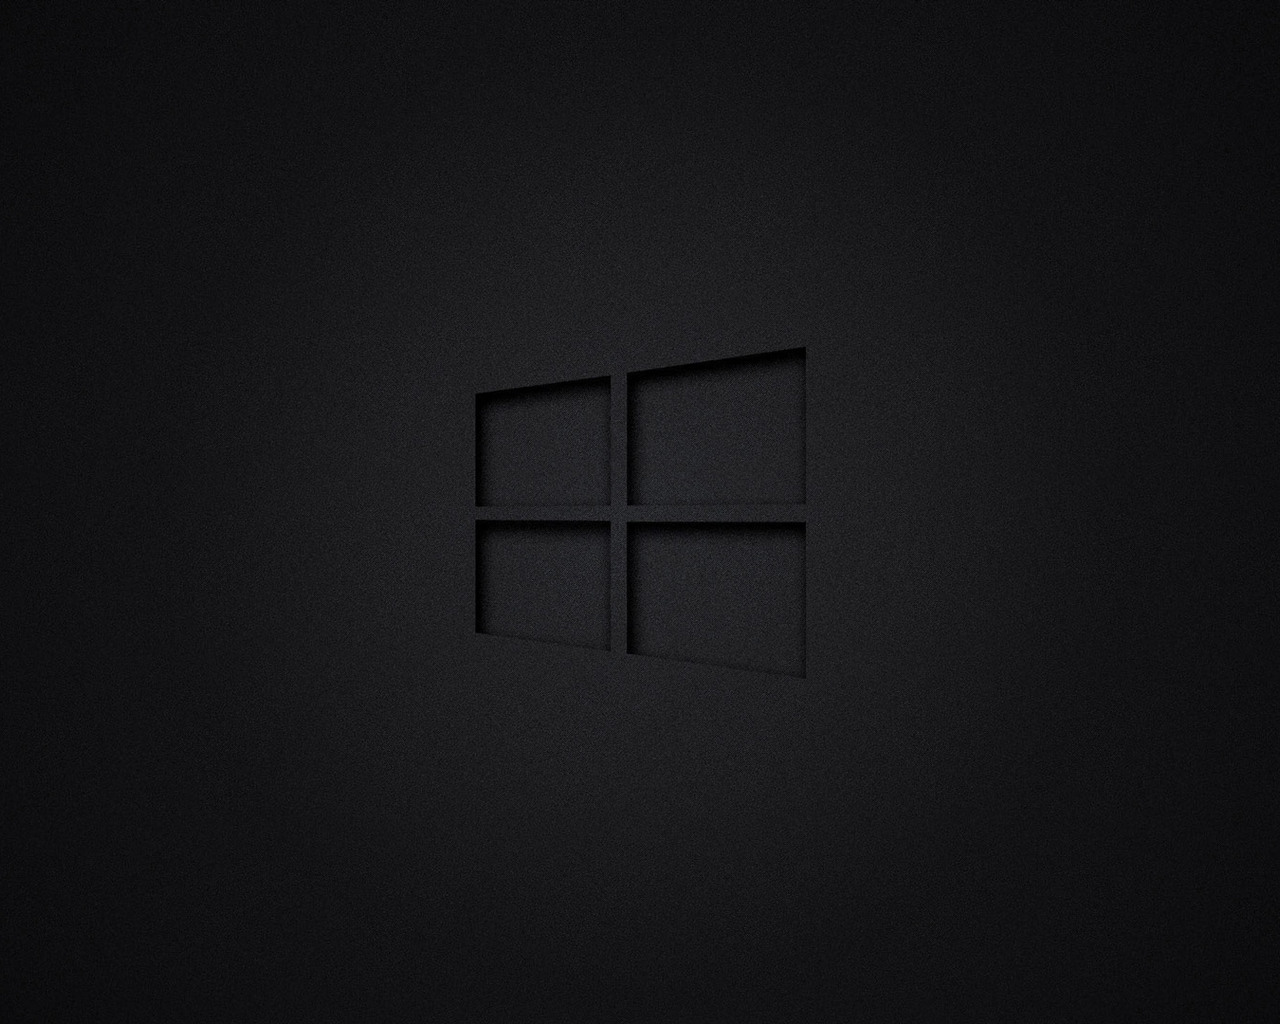 1280x1024 windows 10 dark 1280x1024 resolution hd 4k wallpapers